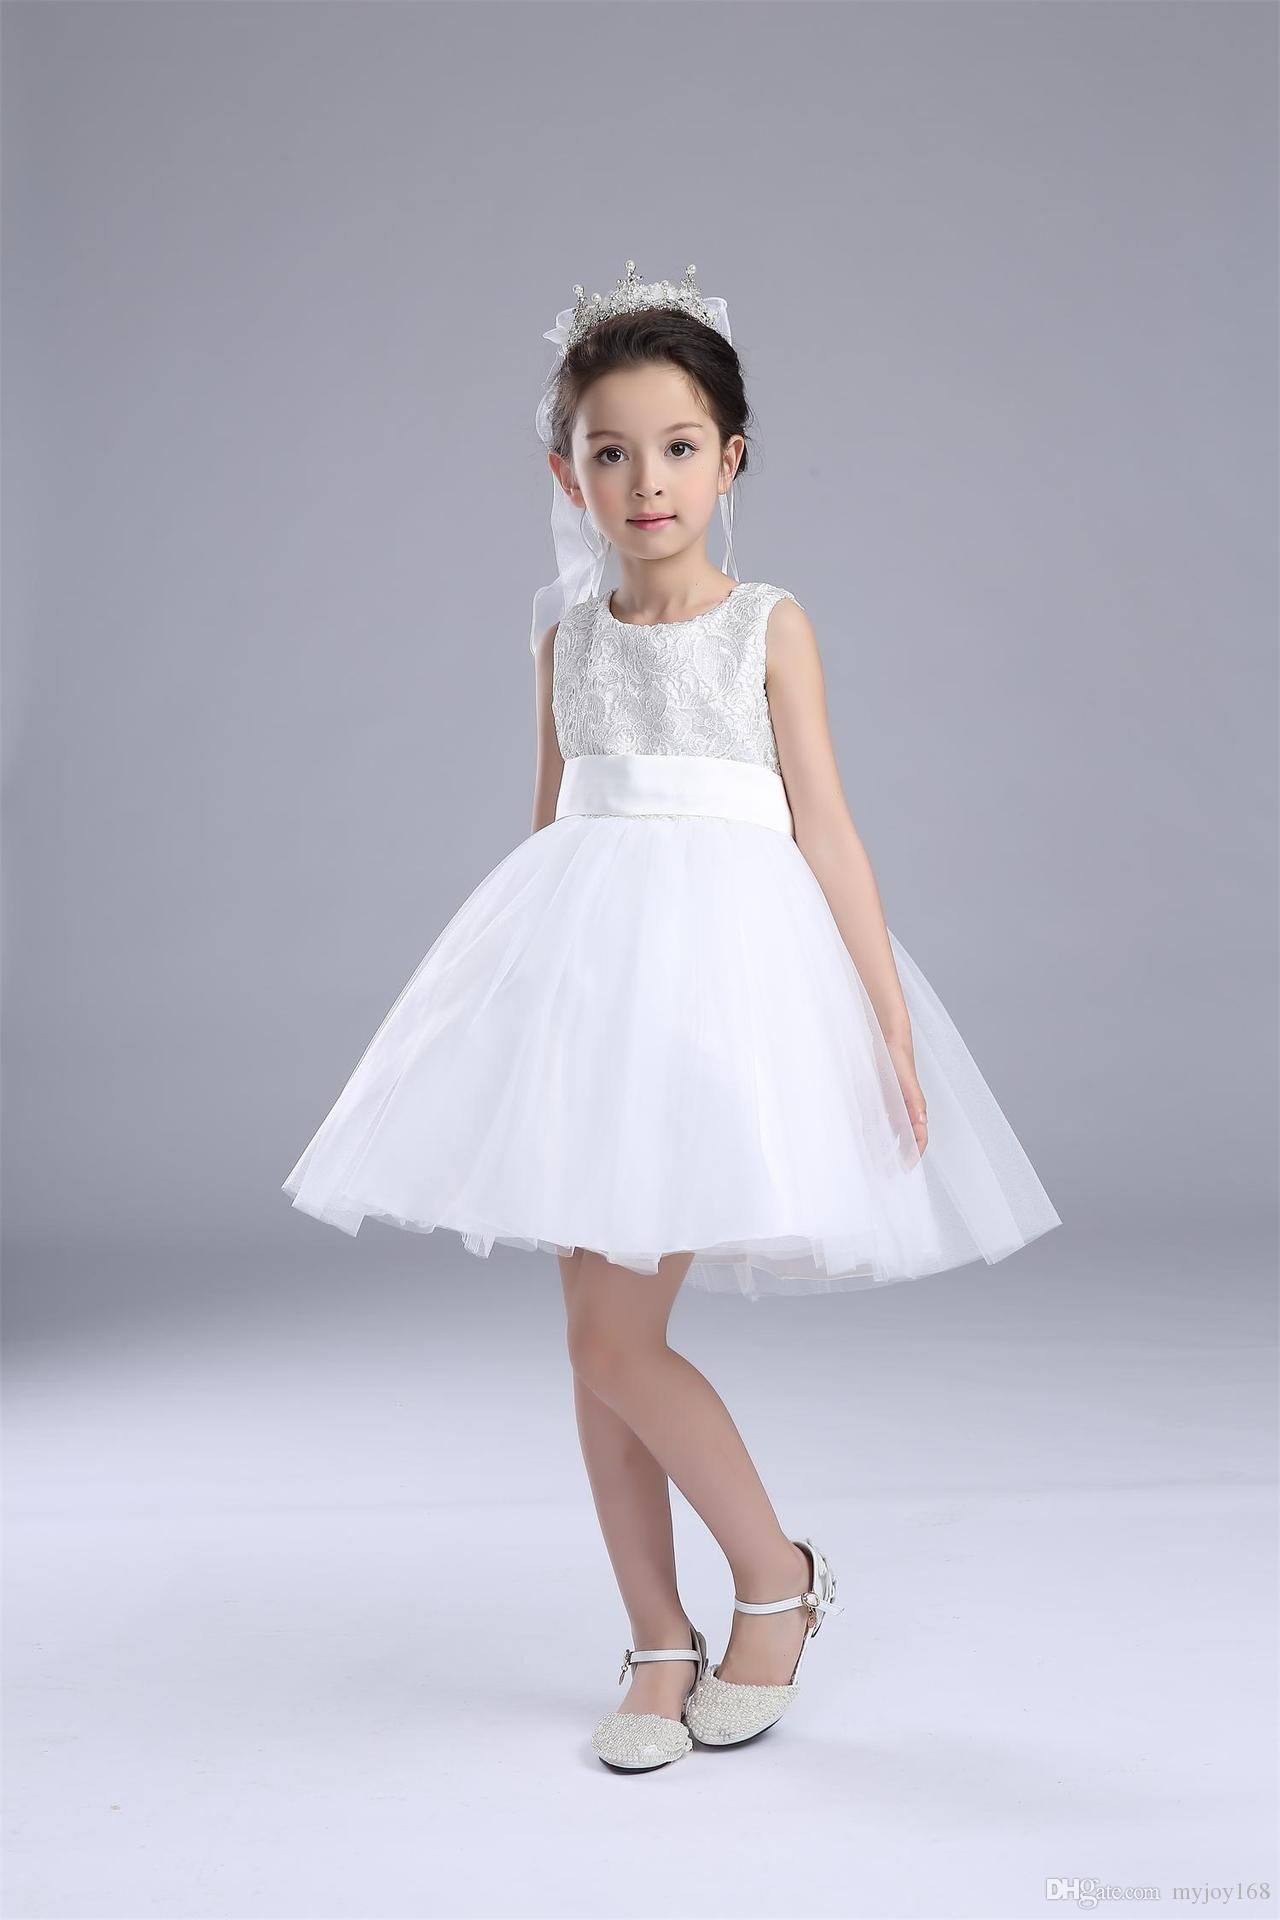 Beautiful Baby Girl Lace Dresses Flower Wedding Party Pink And White Colors Dress 2018 From Myjoy168 1759